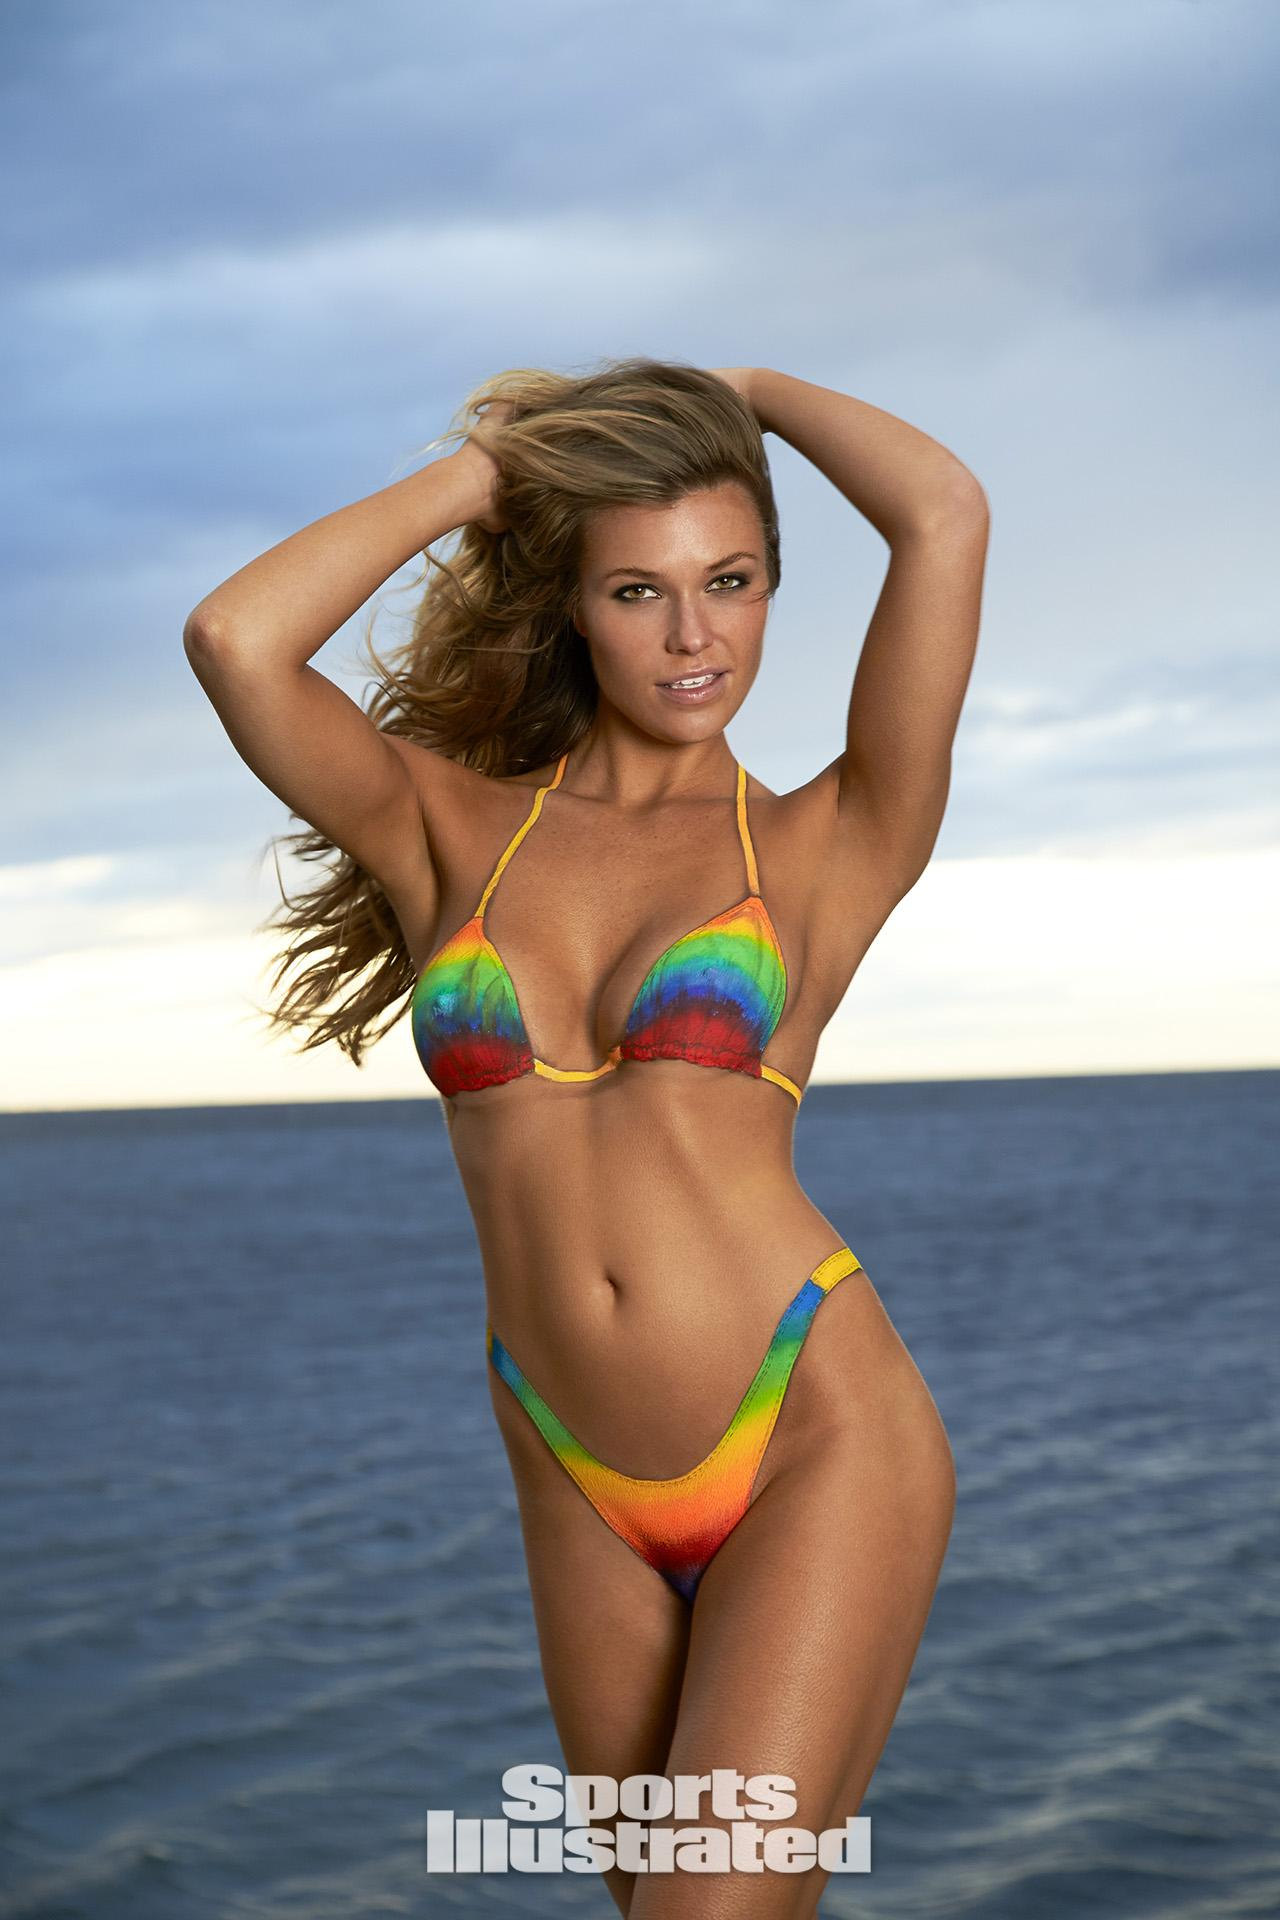 ... Hoopes Swimsuit Body Paint Photos, Sports Illustrated Swimsuit 2014